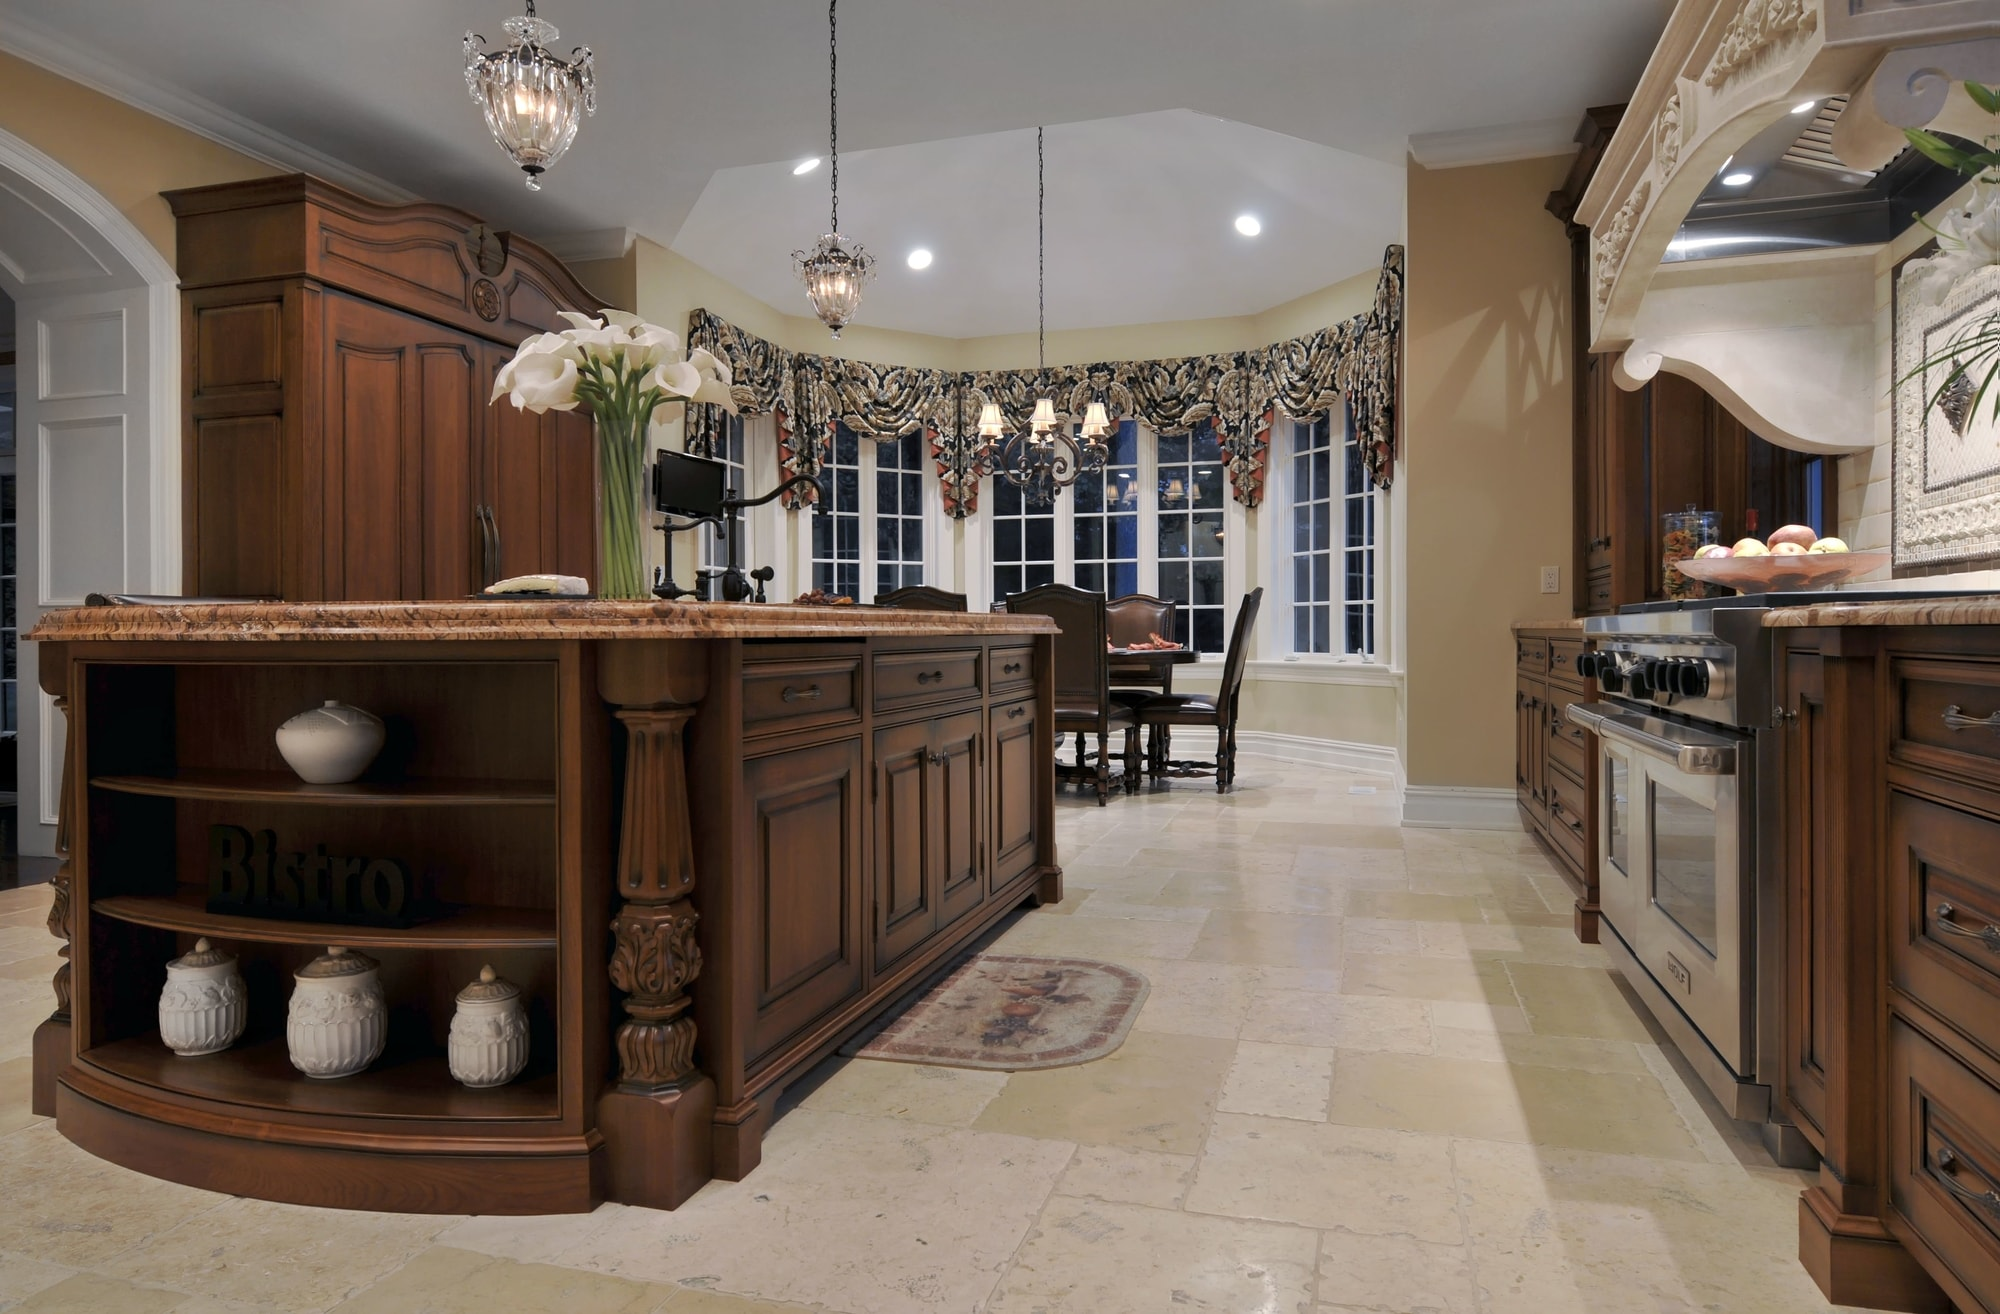 Traditional style kitchen with pendant lighting and chandelier